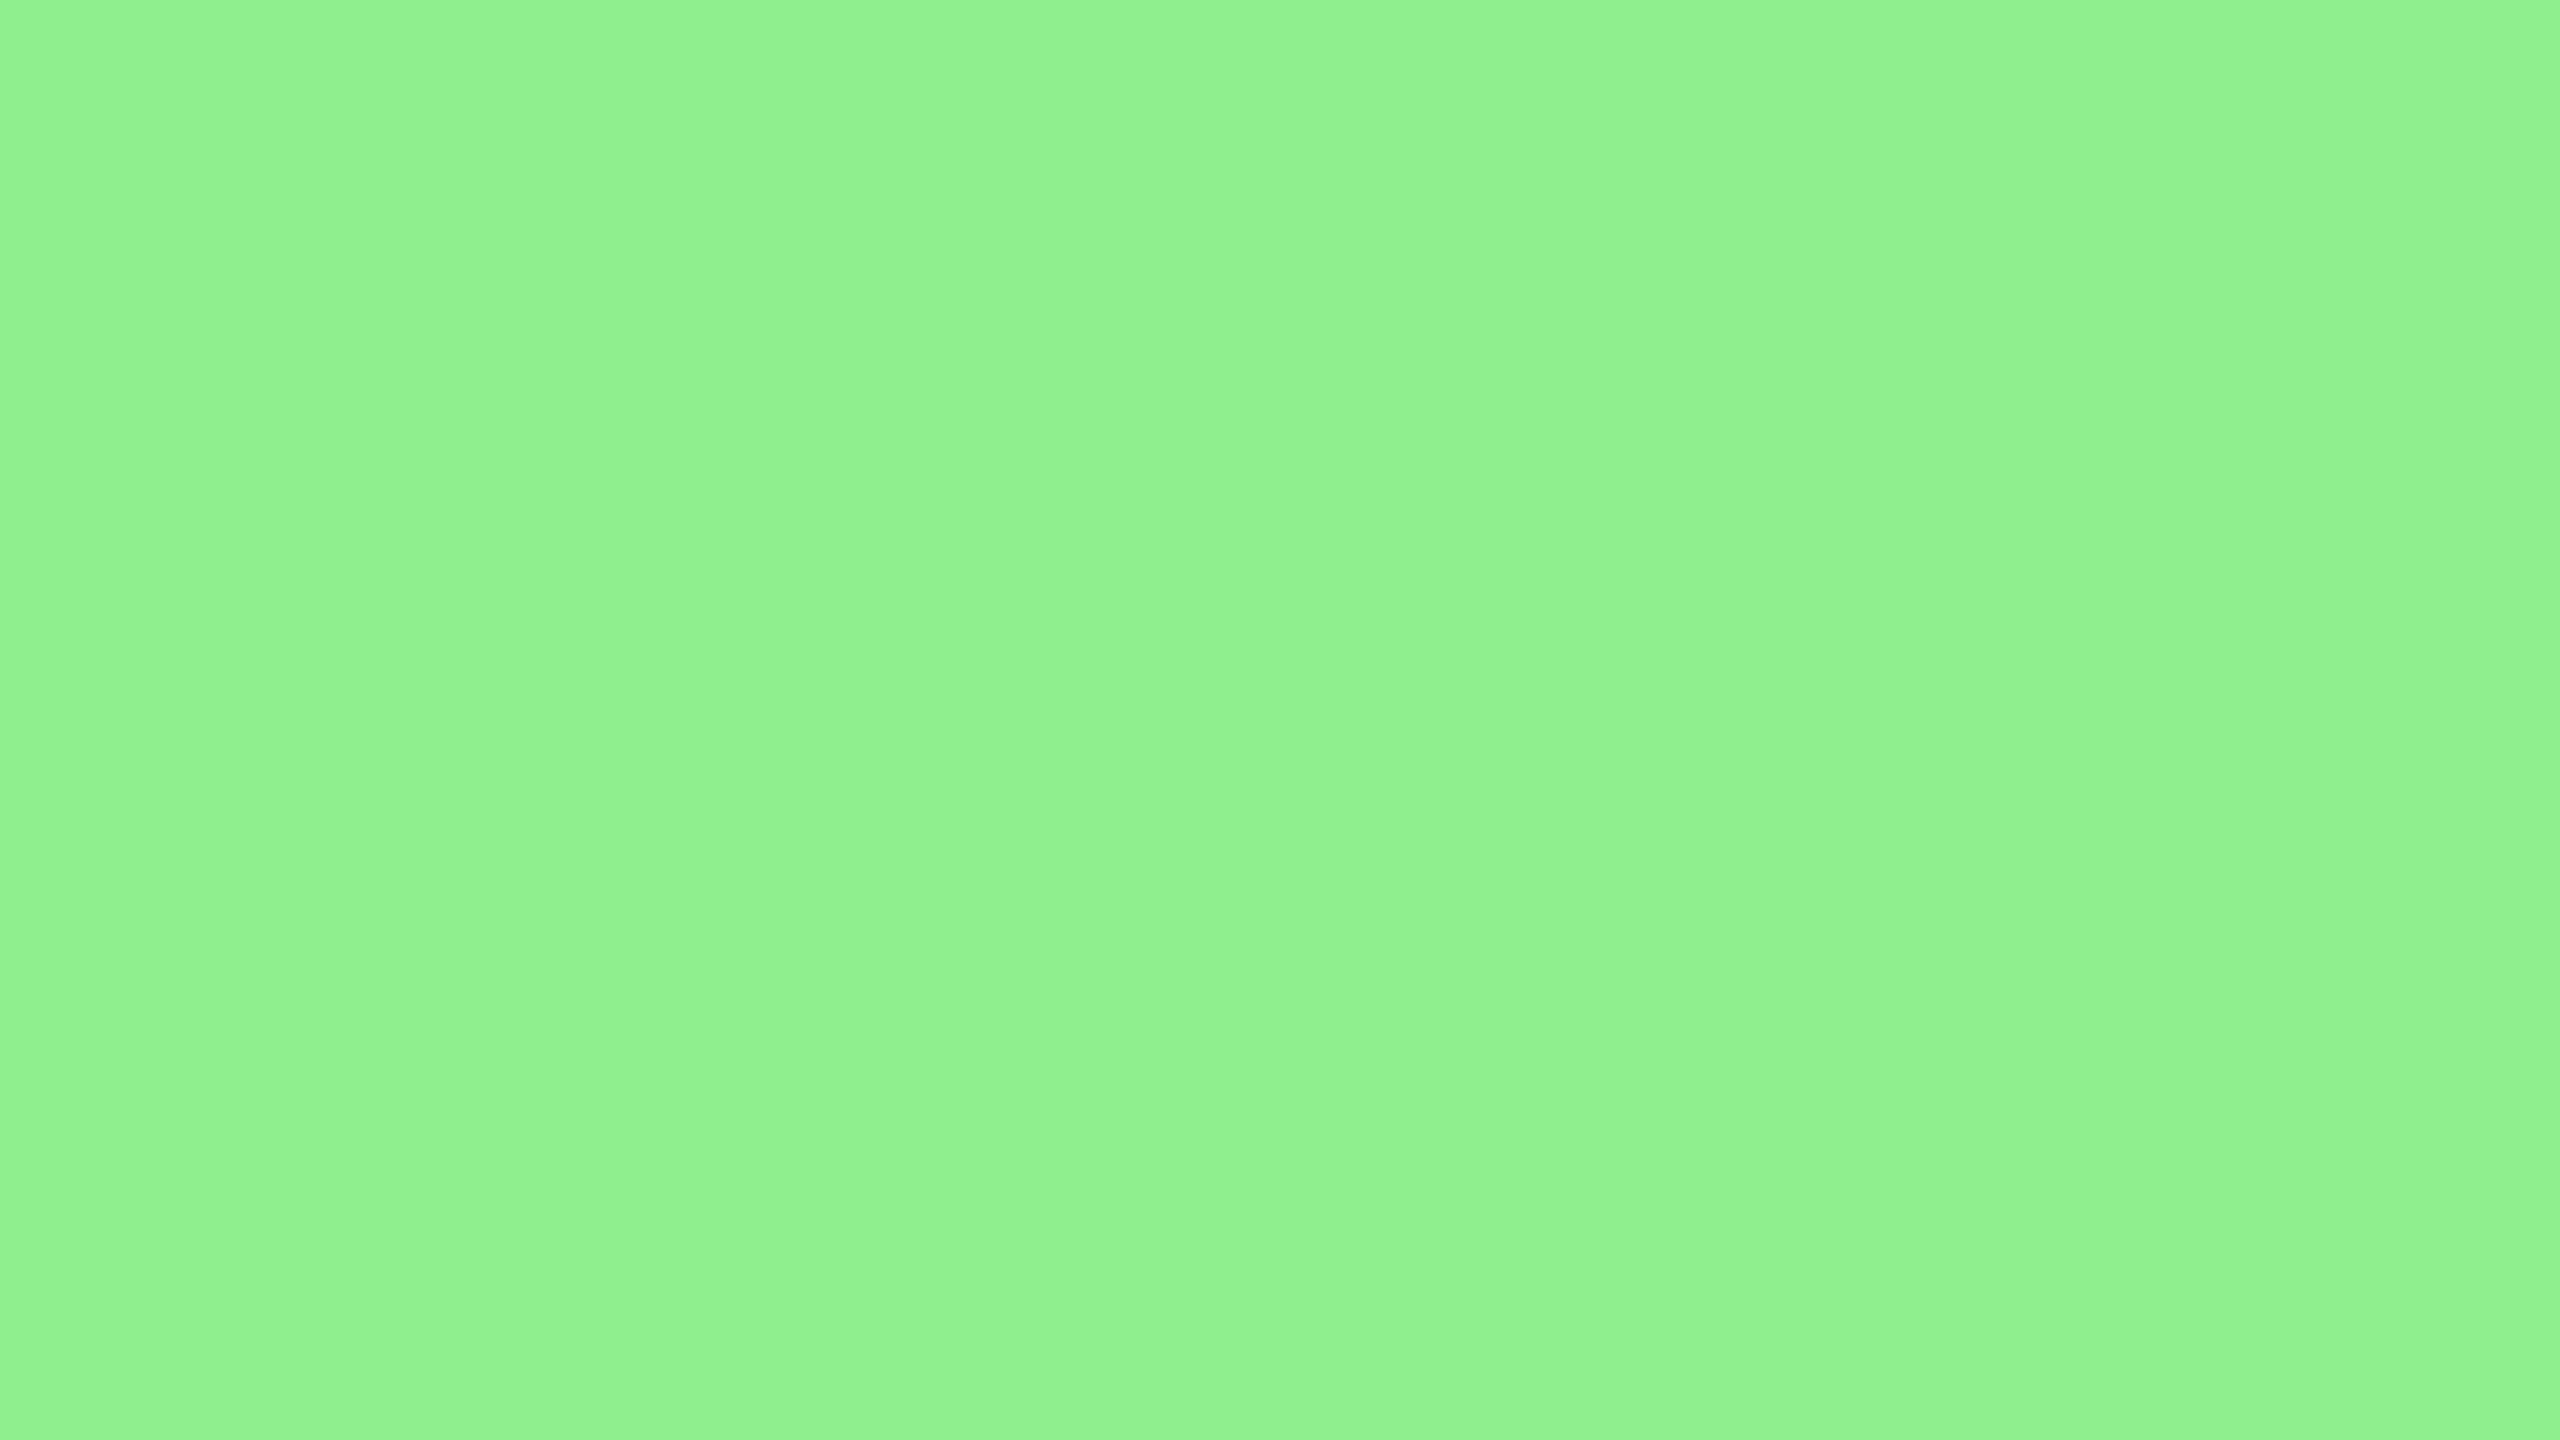 light green color backgrounds - photo #10